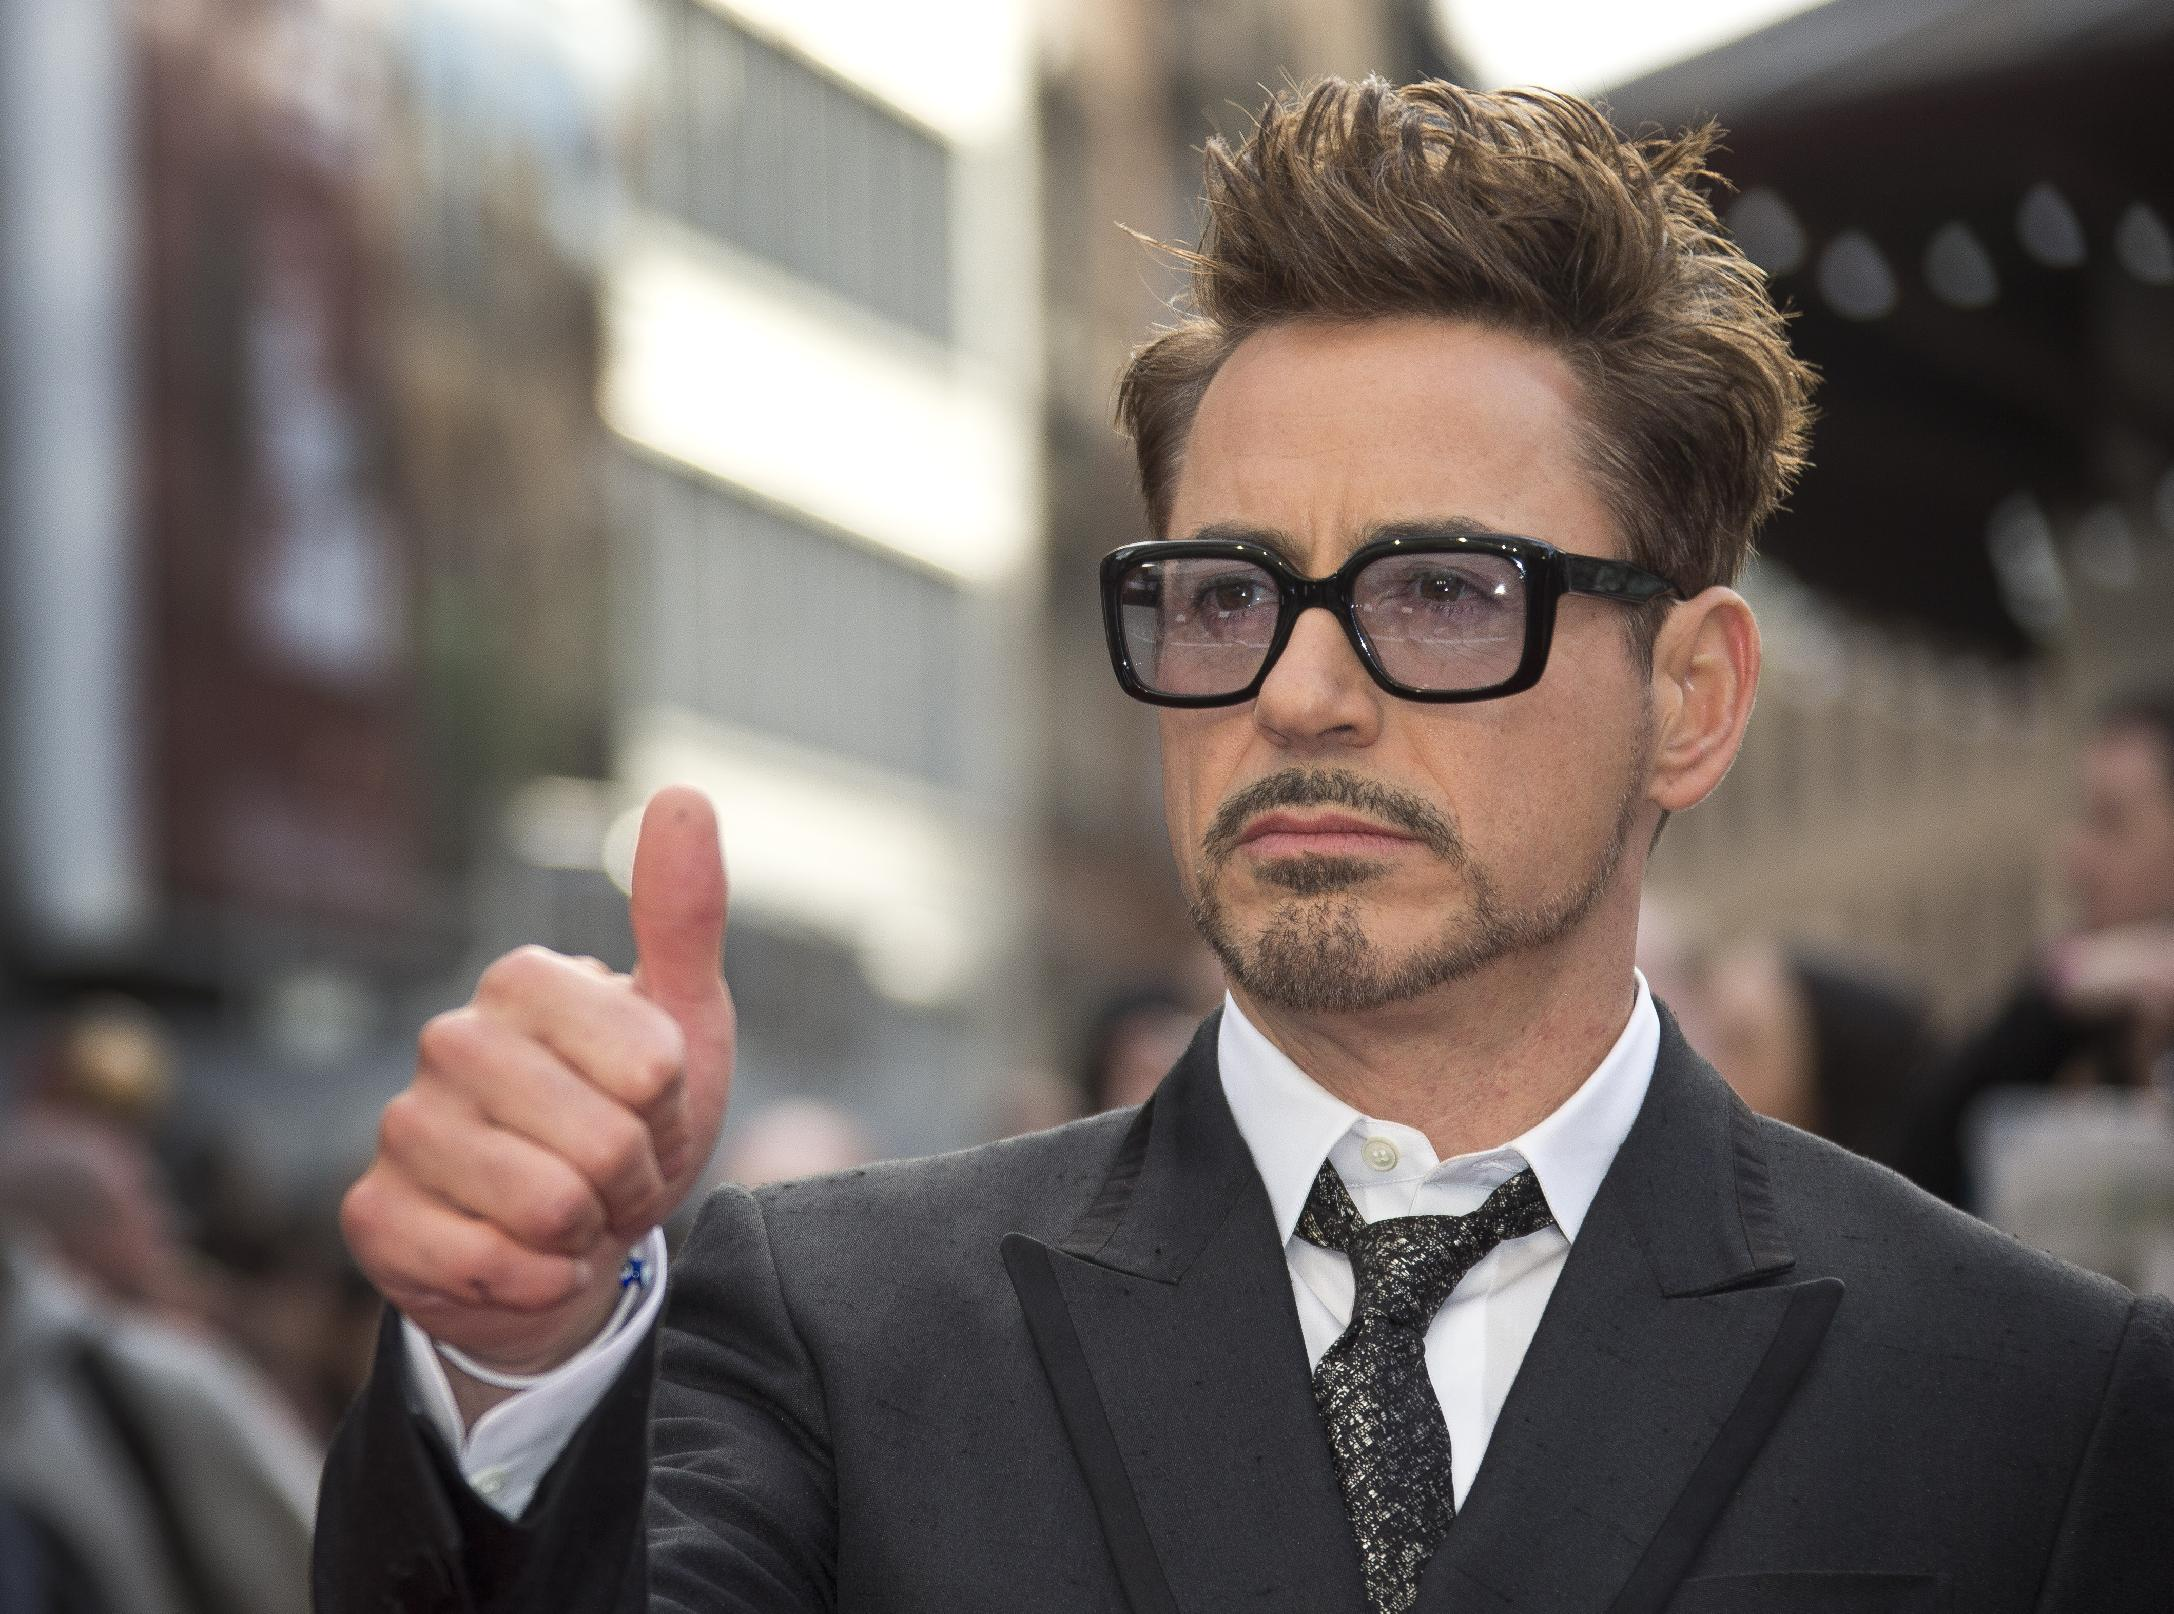 "FILE - This April 18, 2013 photo shows actor Robert Downey Jr at the UK premiere of ""Iron Man 3,"" in central London. Marvel announced Thursday, June 20, that the actor will reprise his role as Iron Man/Tony Stark for both ""The Avengers 2"" and ""The Avengers 3."" Downey Jr. has played the character in a trilogy of ""Iron Man"" films, as well as the first ""Avengers"" film,"" which made $2.7 billion worldwide. (Photo by Joel Ryan/Invision/AP, file)"